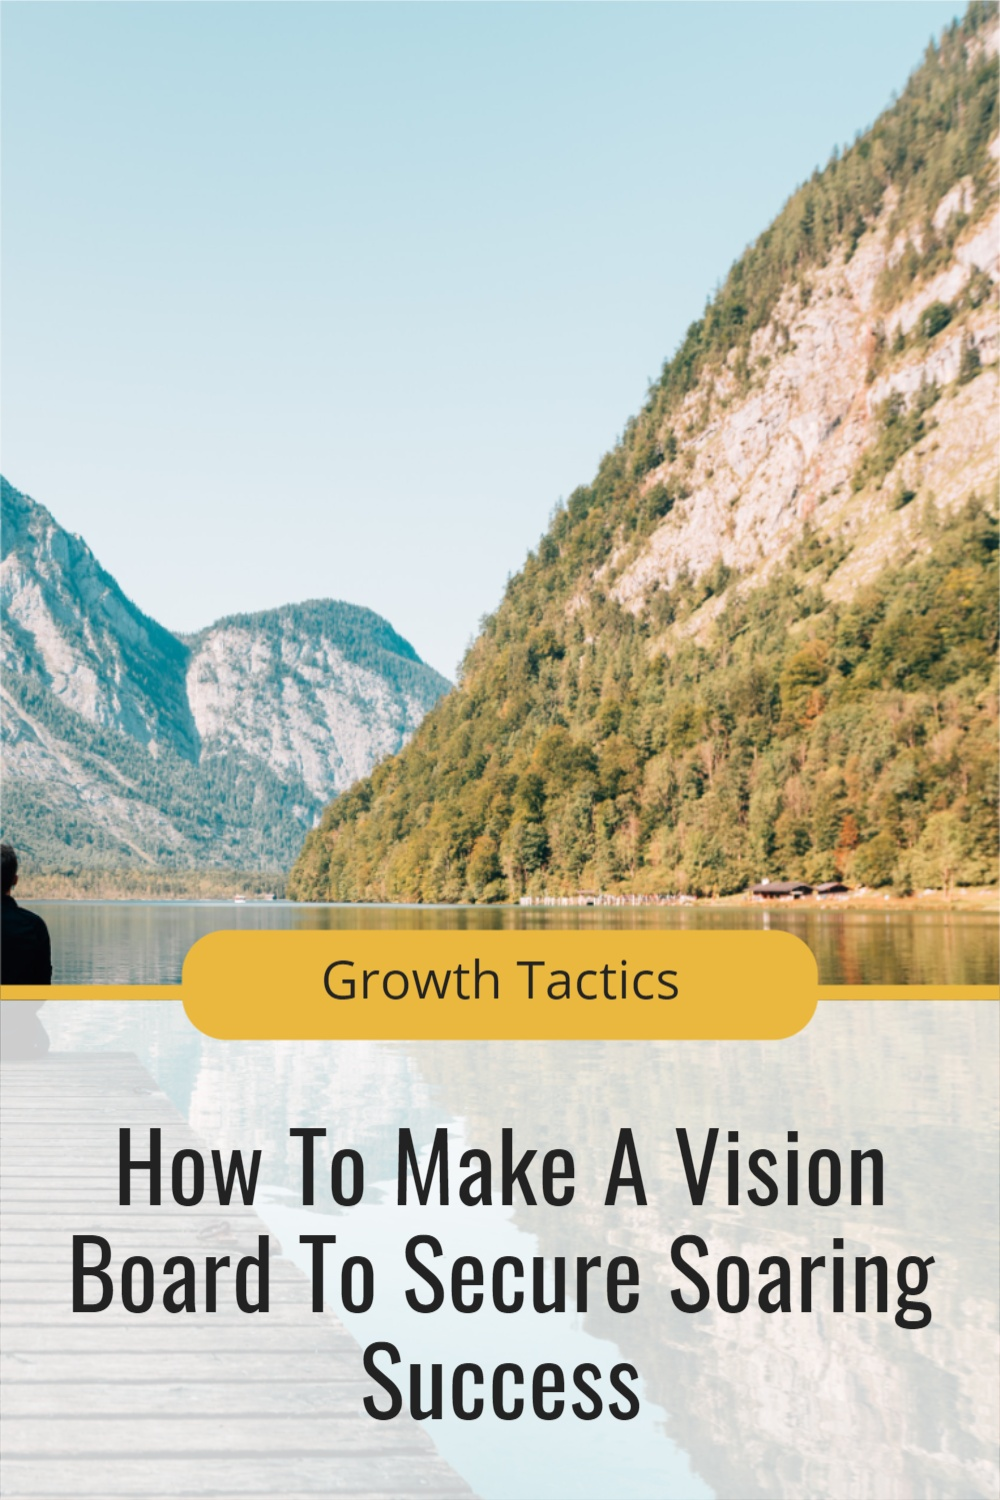 How To Make A Vision Board To Secure Soaring Success